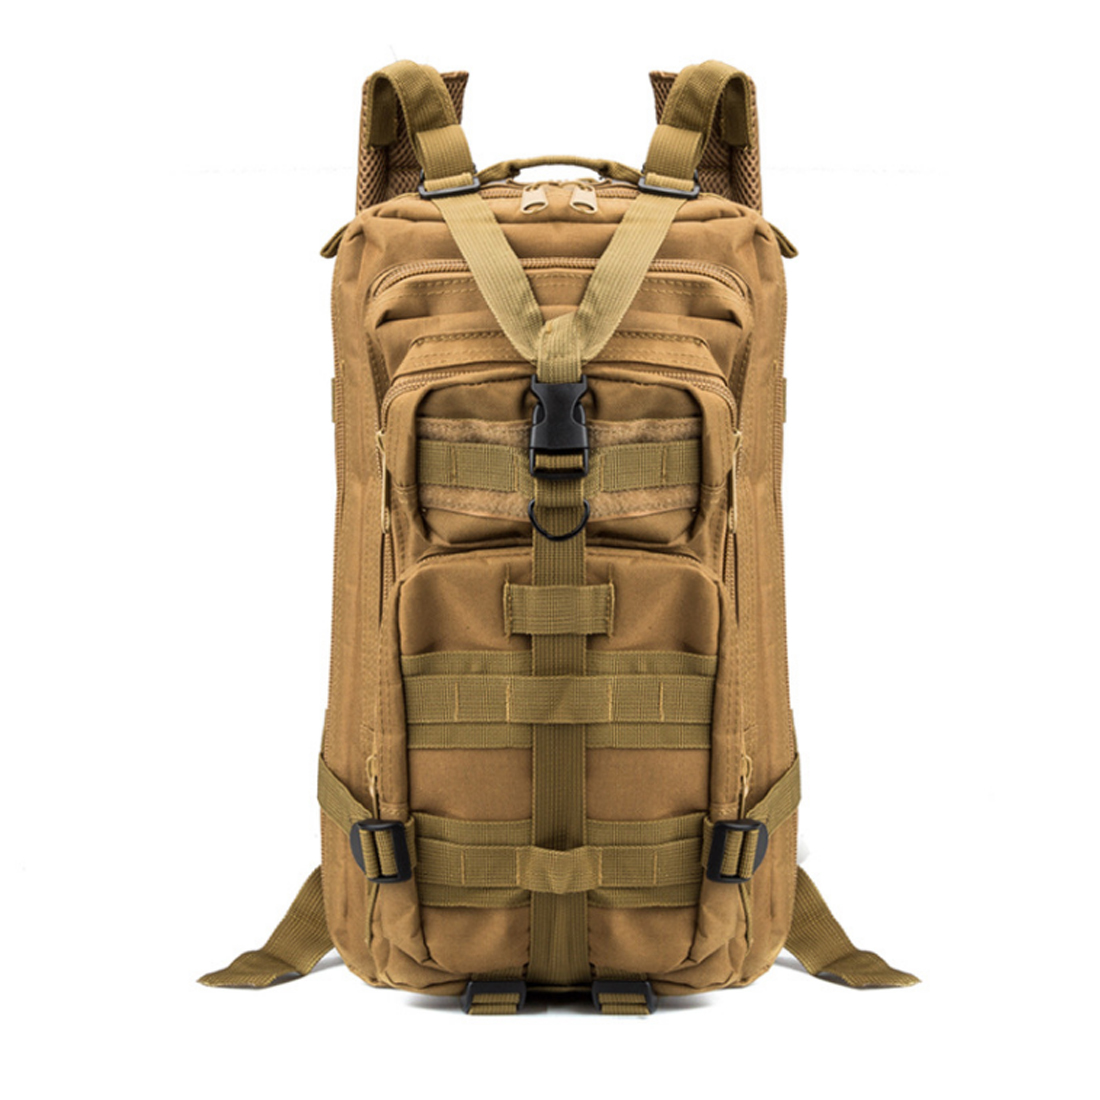 2017 Men Women Outdoor Military Army Tactical Backpack Trekking Sport Travel Rucksacks Camping Hiking Trekking Camouflage Bag 65l men outdoor army military tactical bag backpack large size camping hiking rifle bag trekking sport rucksacks climbing bags